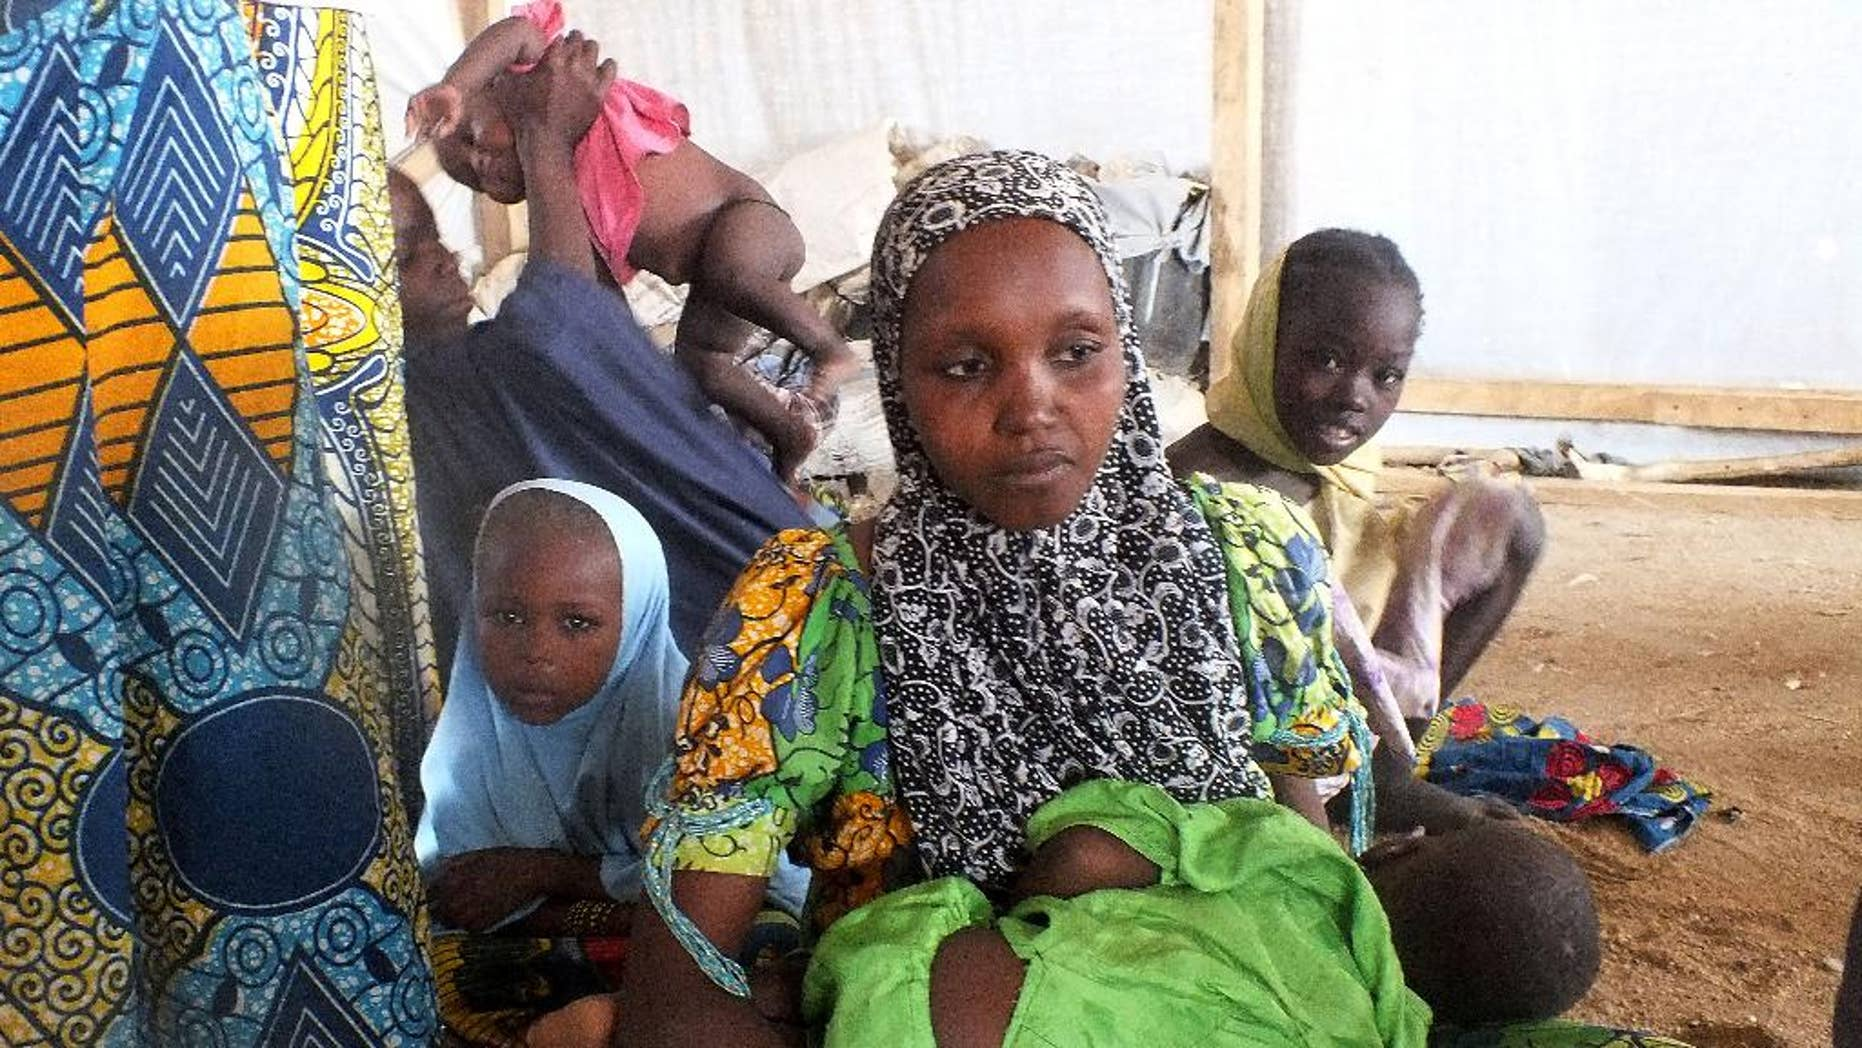 FILE -In this file photo taken on Wednesday, Feb. 25, 2015, a family of refugees that fled their homes due to violence from the Islamic extremist group Boko Haram sit inside a refugee camp in Minawao, Cameroon. With radical Islamic insurgents on its doorstep, Cameroon is trying to head off unrest at home by quelling any signs of the extremism that has roiled neighboring Nigeria. In recent months, Cameroon has arrested dozens of imams and their followers accused of promoting radical ideology and collaborating with Nigeria's Boko Haram militants. (AP Photo/Edwin Kindzeka Moki)